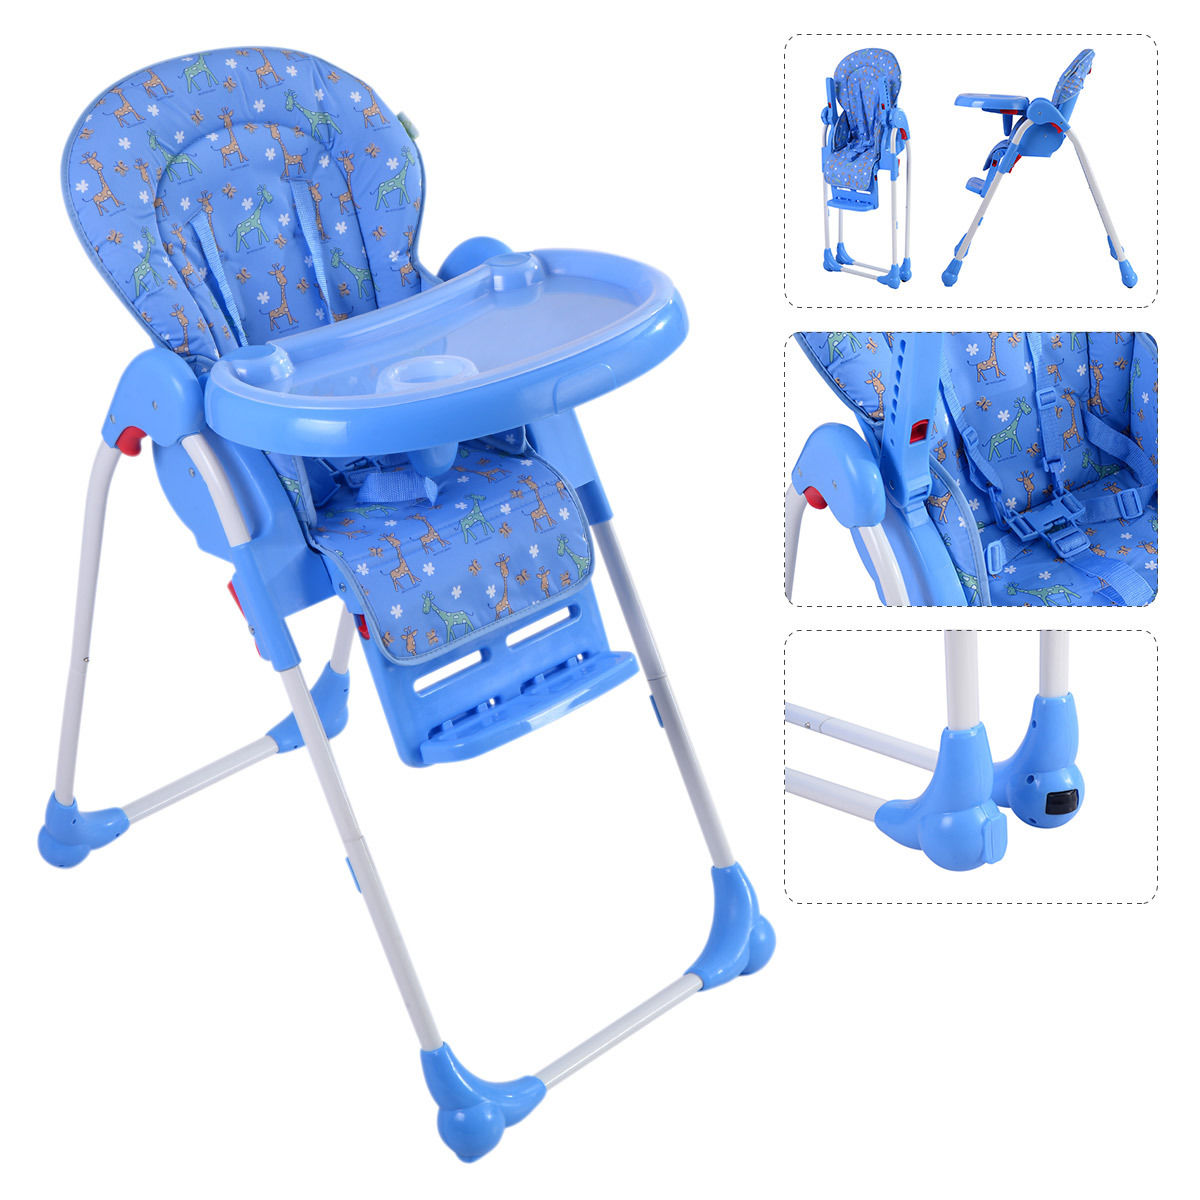 GHP 33-Lbs Capacity Blue Adjustable Baby High Chair Foldable Feeding Booster Seat